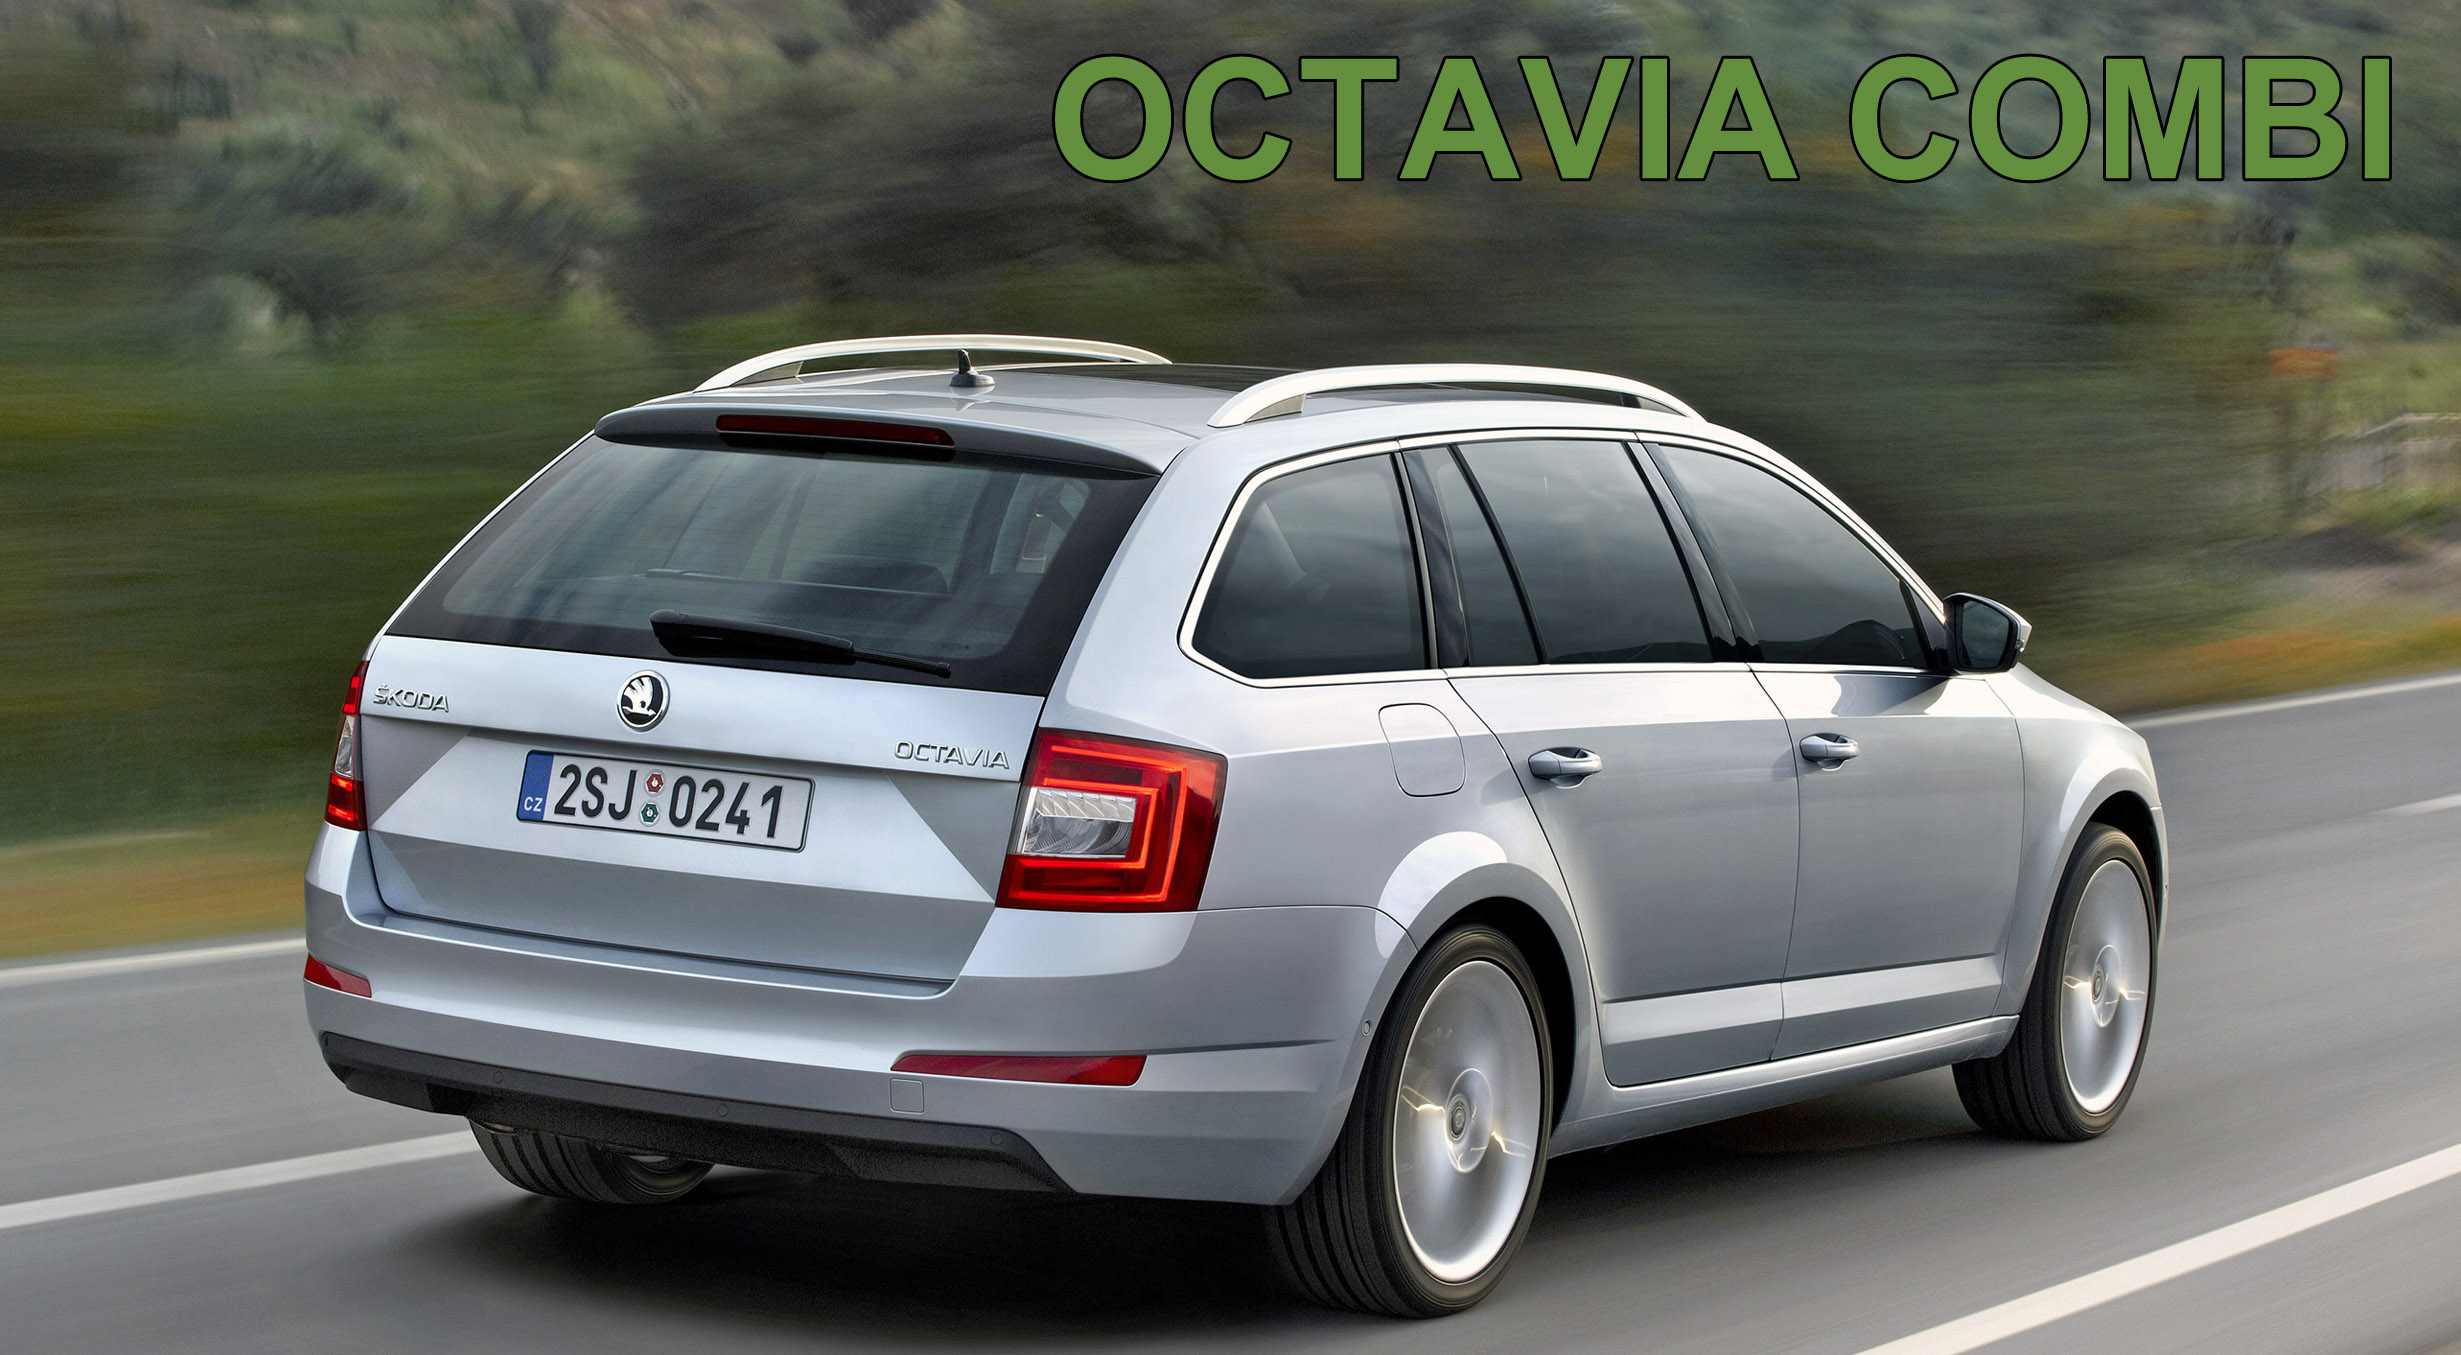 les stars de skoda octavia et octavia combi. Black Bedroom Furniture Sets. Home Design Ideas